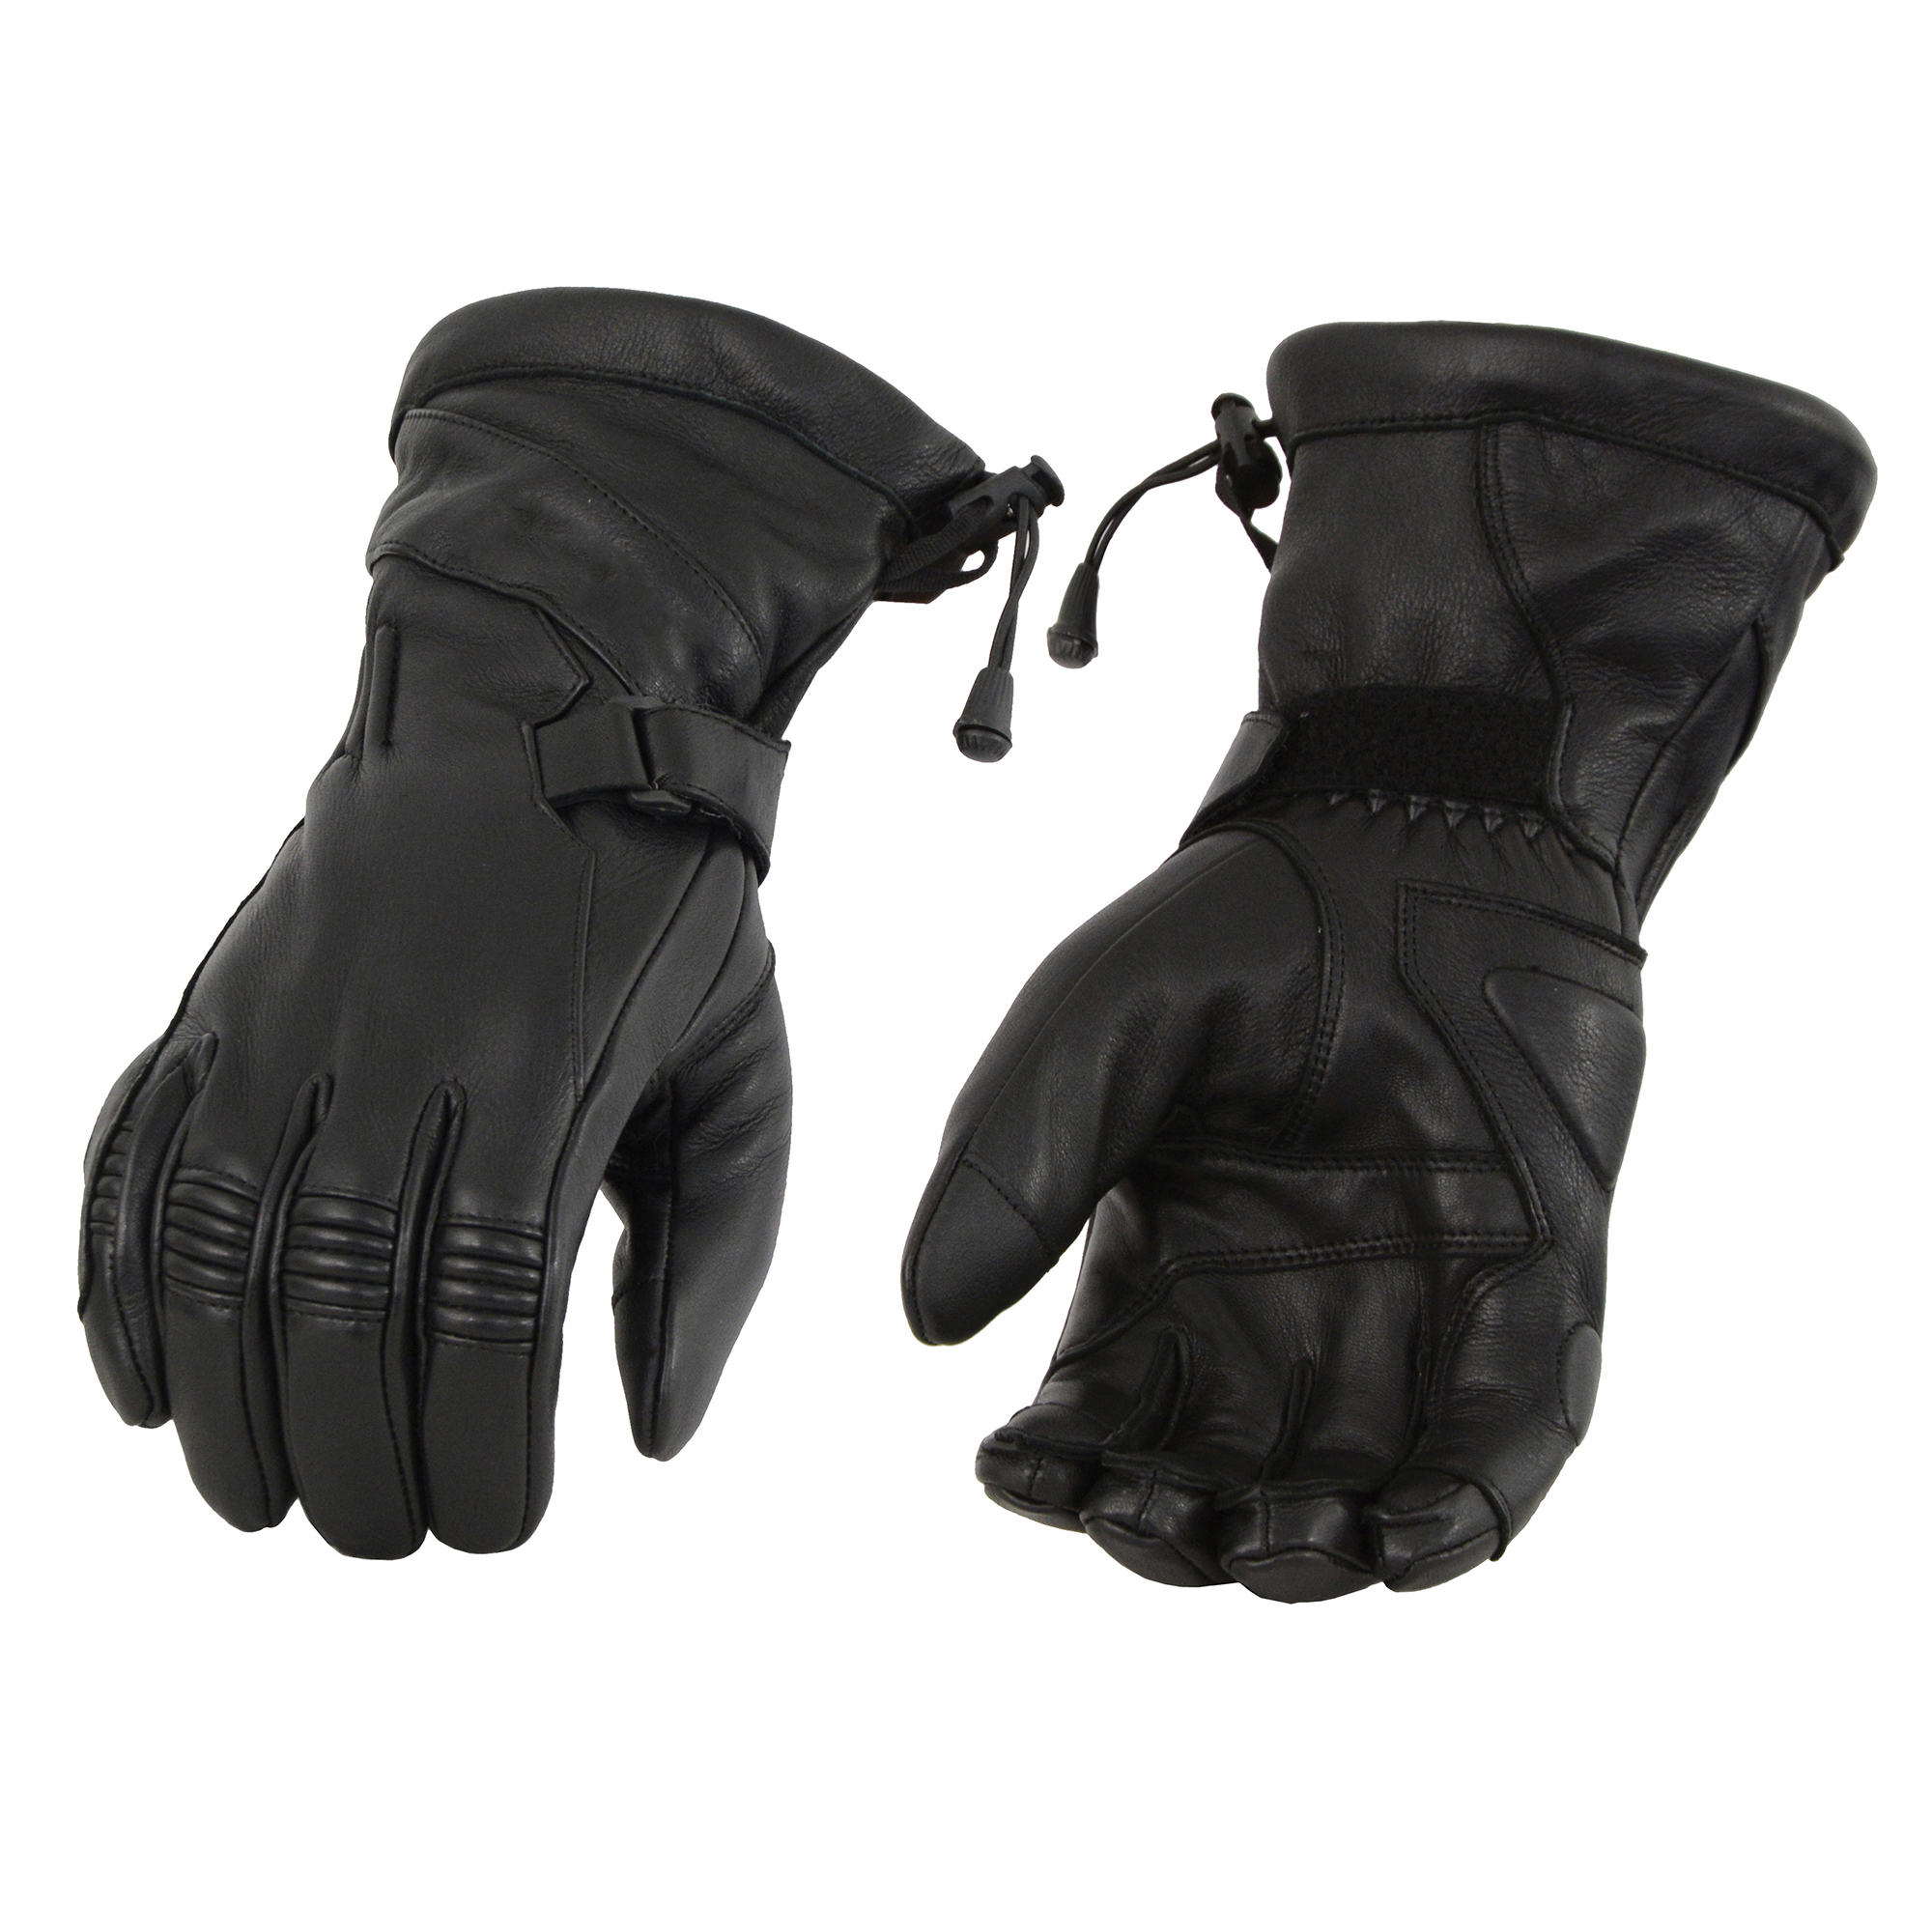 3fbf59a3af326 Leather gloves, Motorcycle leather gloves, biker gloves, riding gloves: